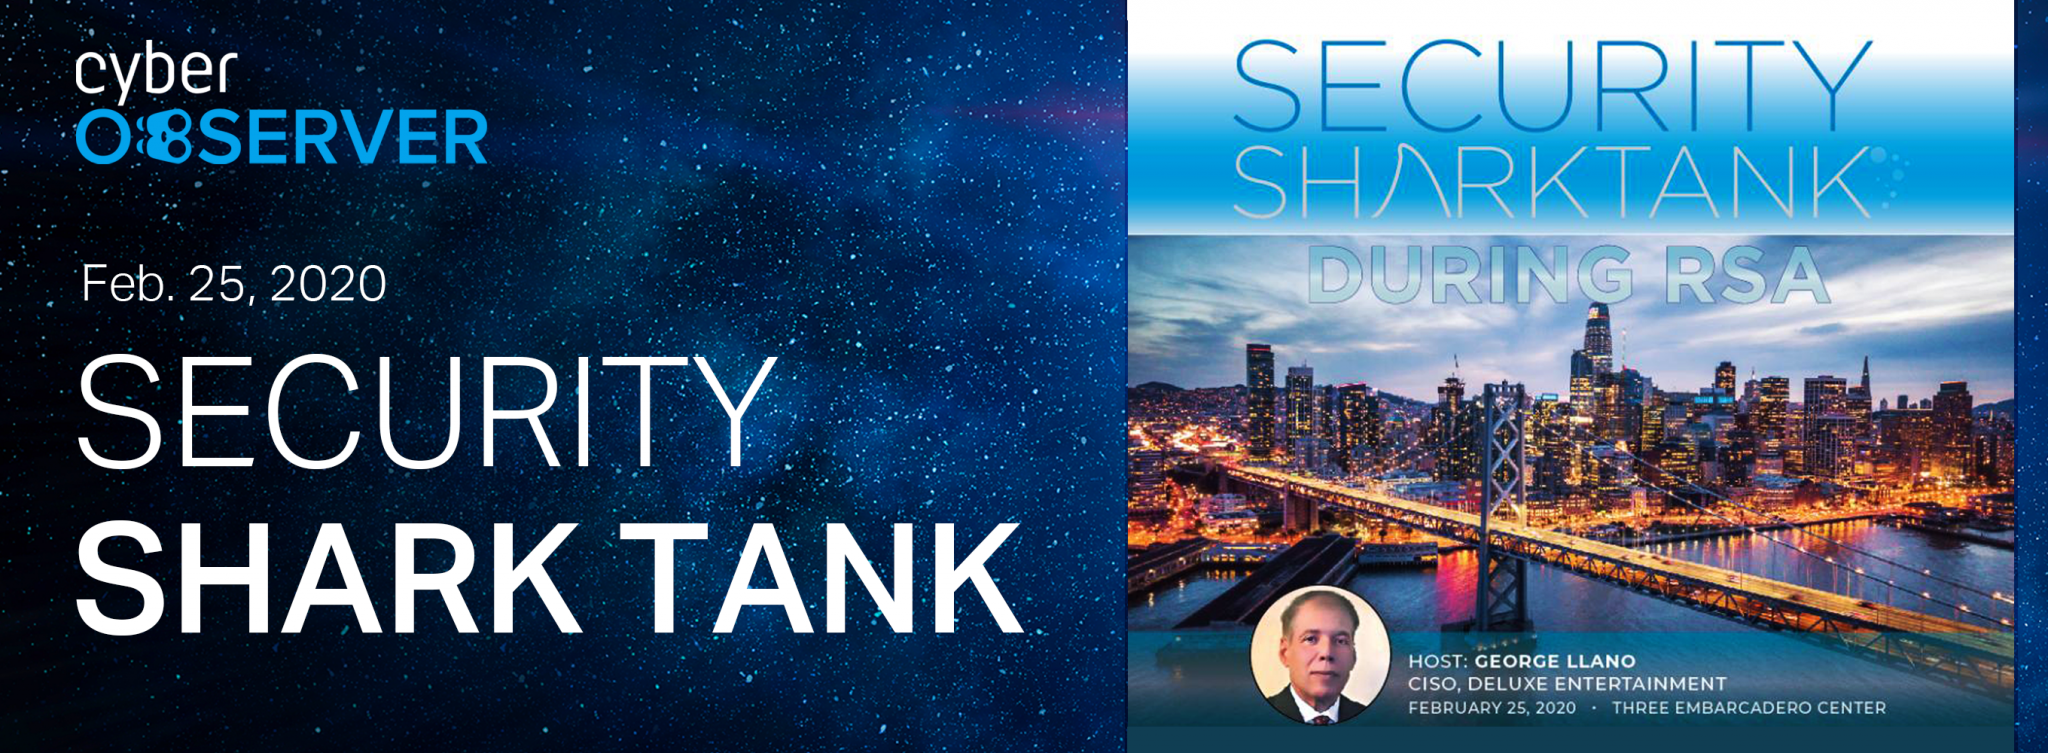 Cyber Observer at Security Shark Tank